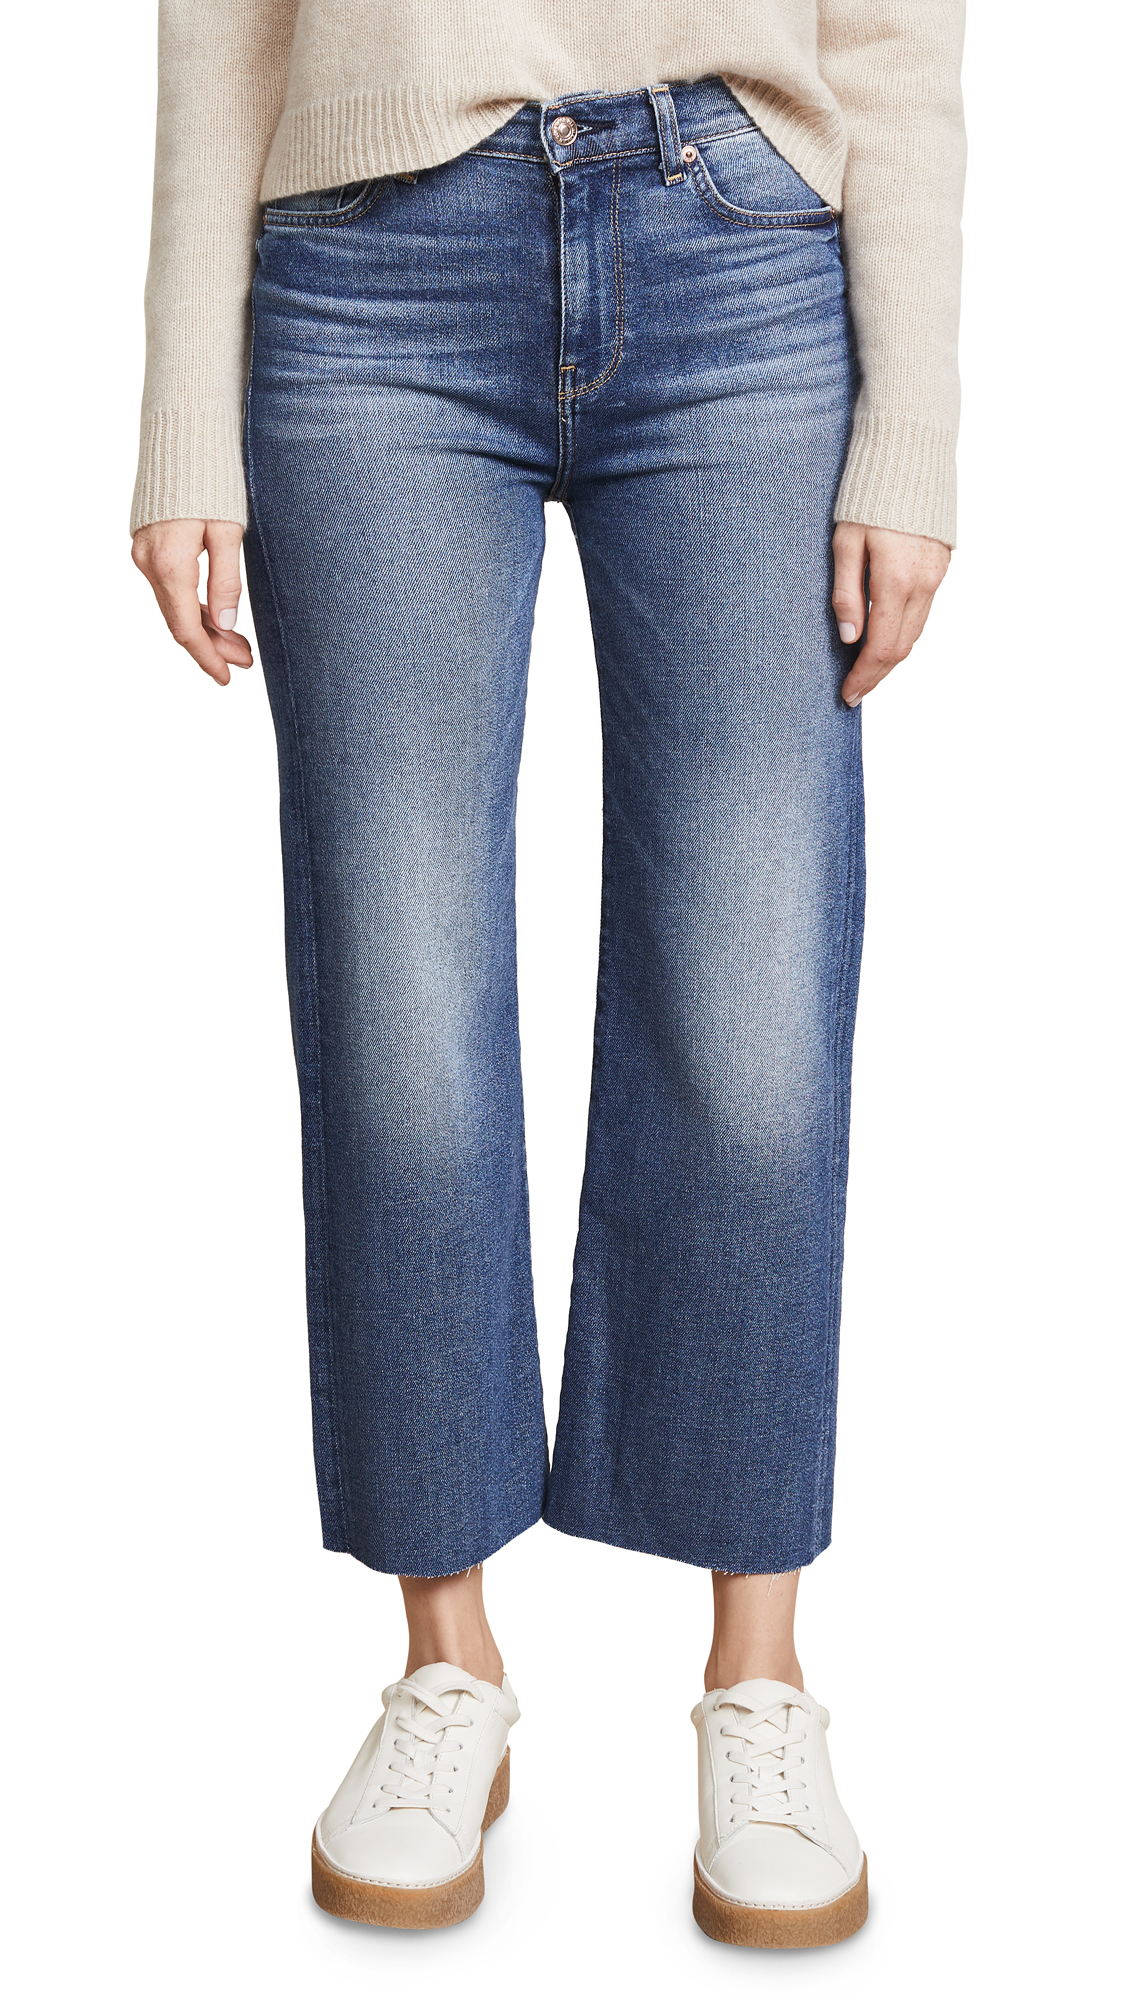 CROPPED ALEXA TROUSER JEANS